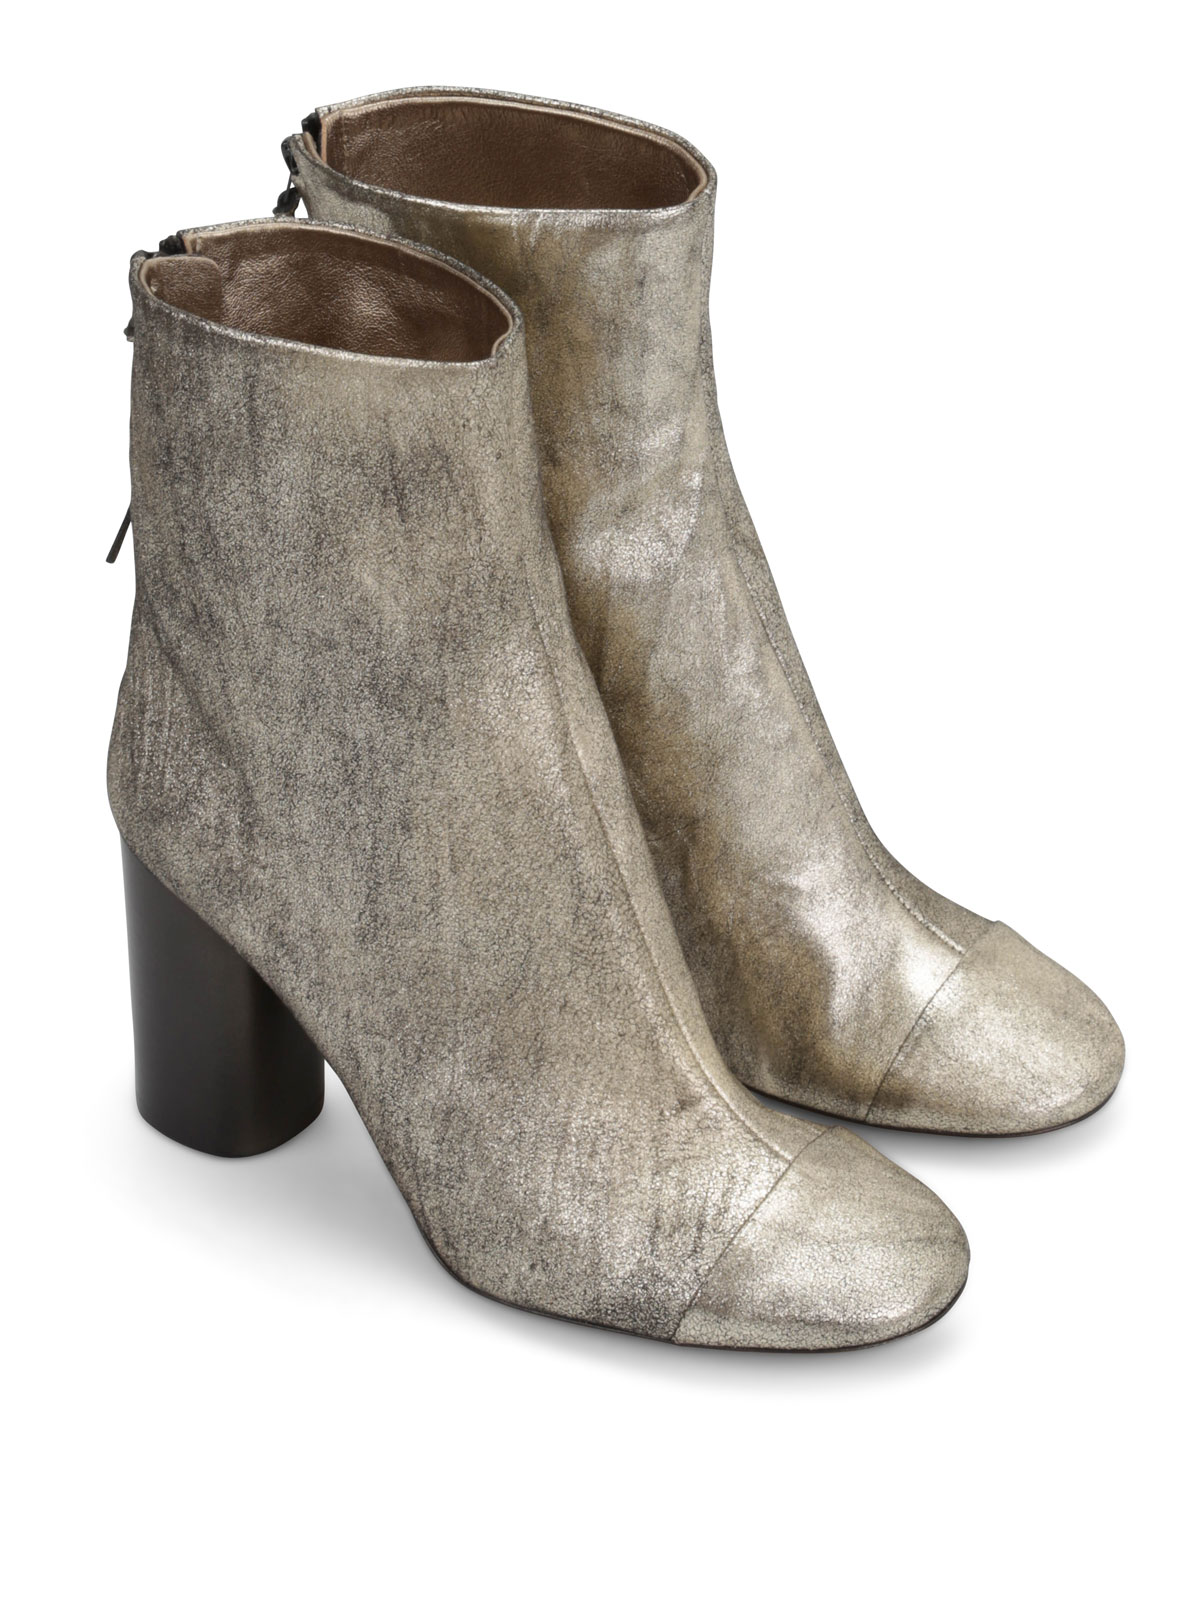 Ankle Boots Isabel Marant Grover glitter boots by isabel marant ankle boots ikrix isabel marant ankle boots grover glitter boots sisterspd